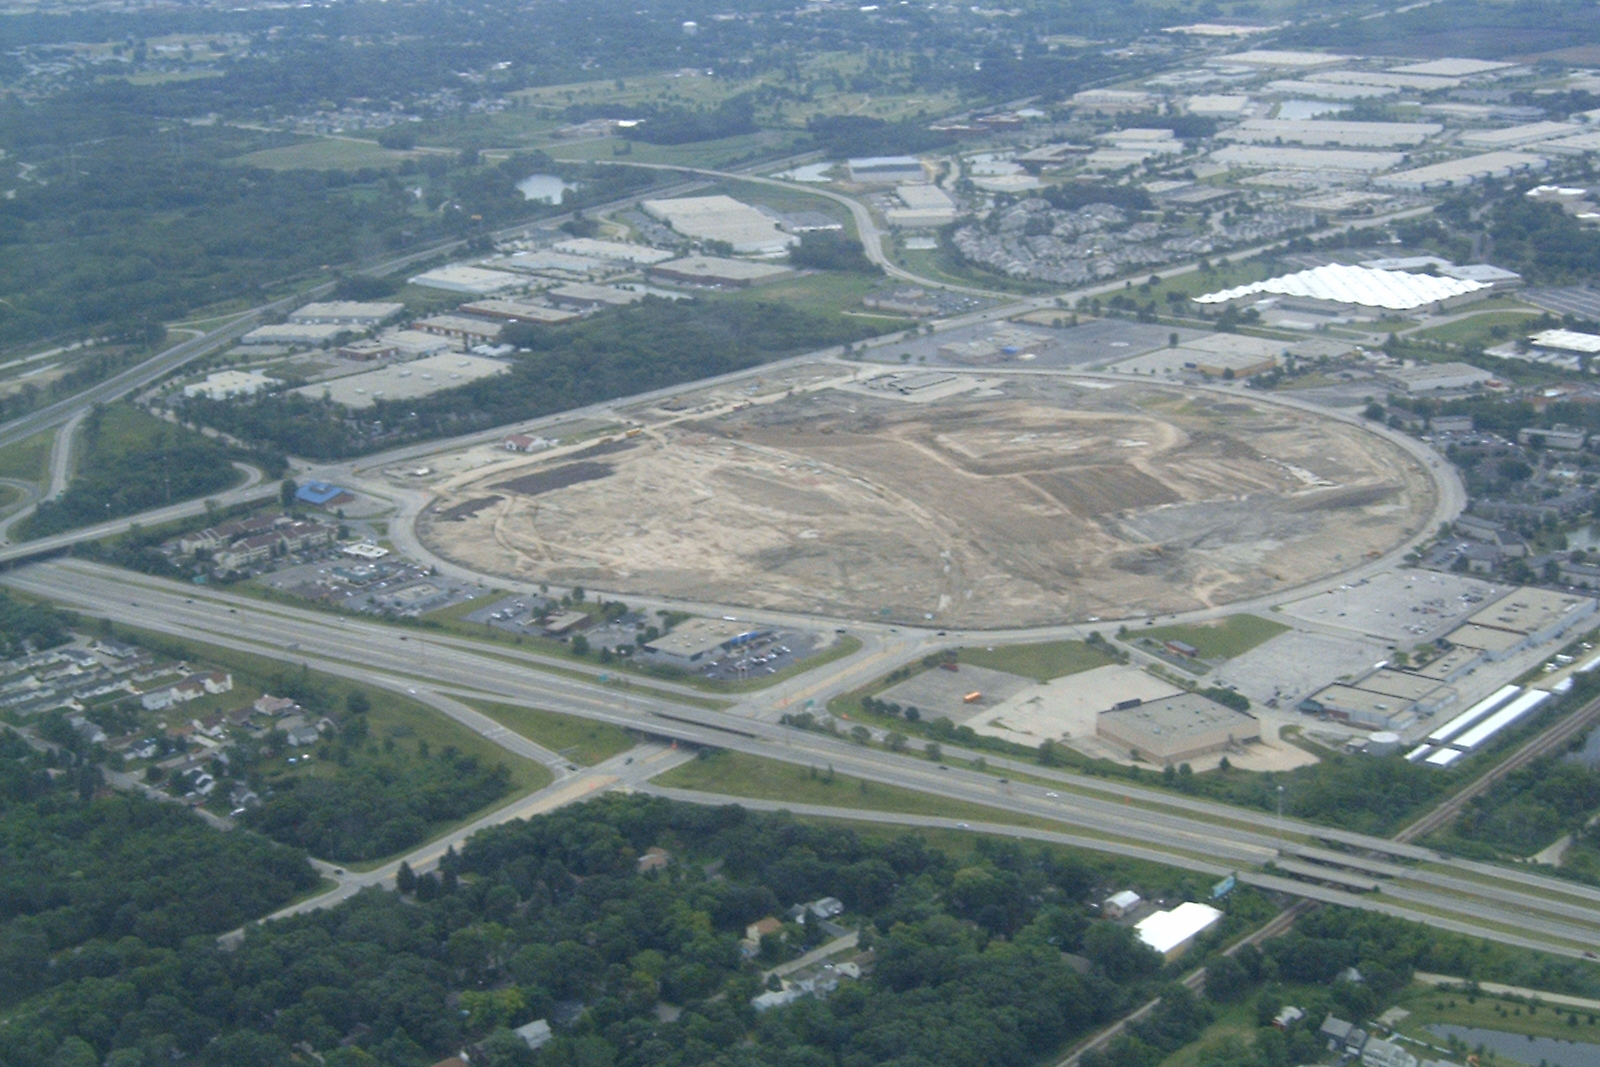 Lakehurst/Fountain Square site: August 2004